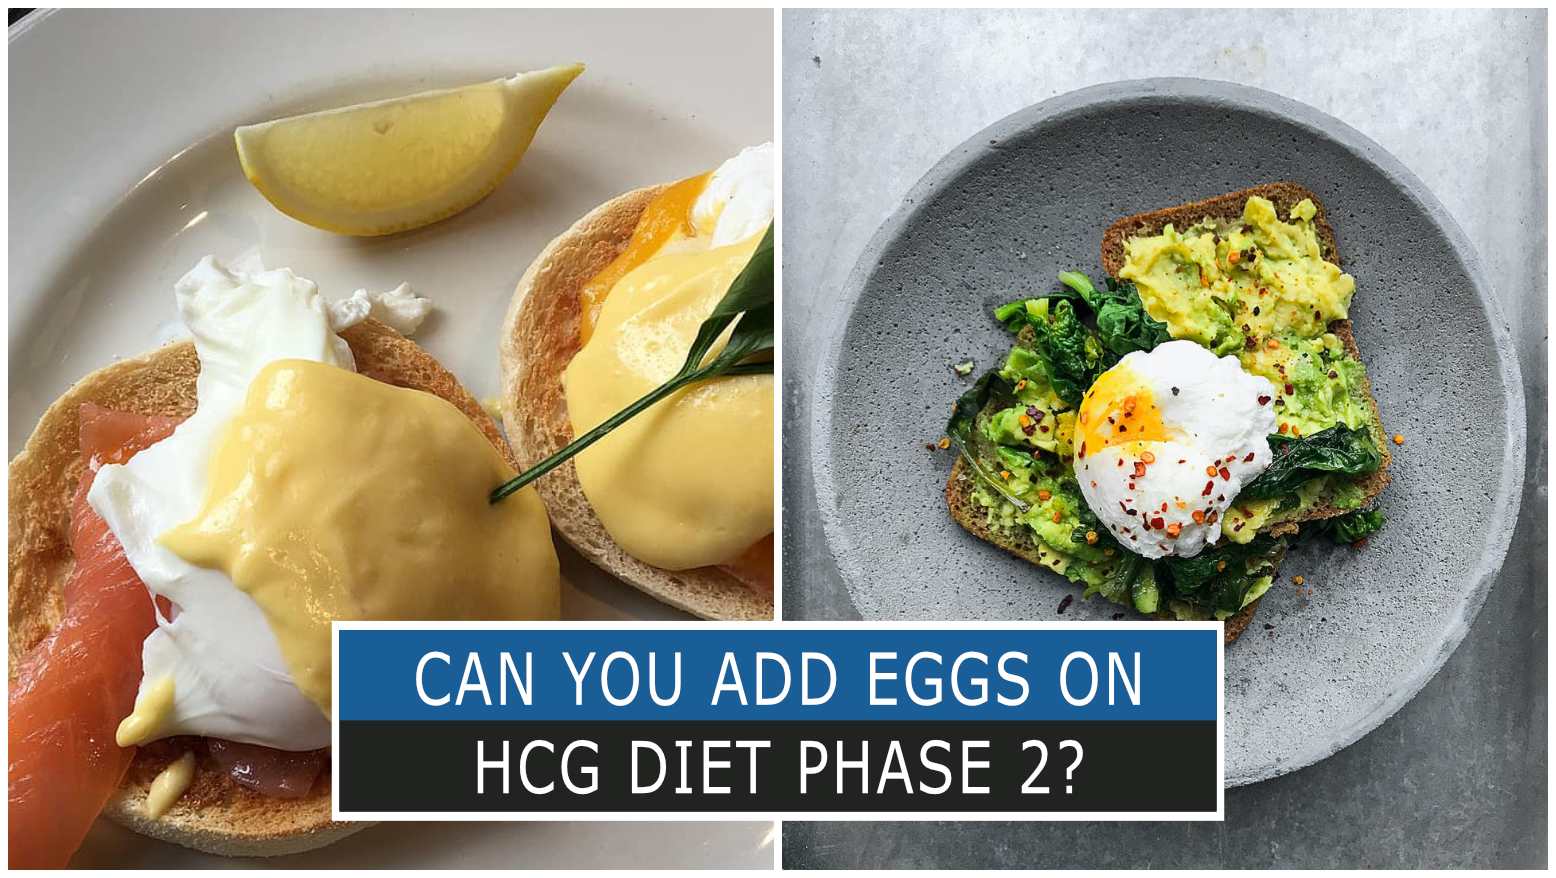 CAN YOU ADD EGGS ON HCG DIET PHASE 2?